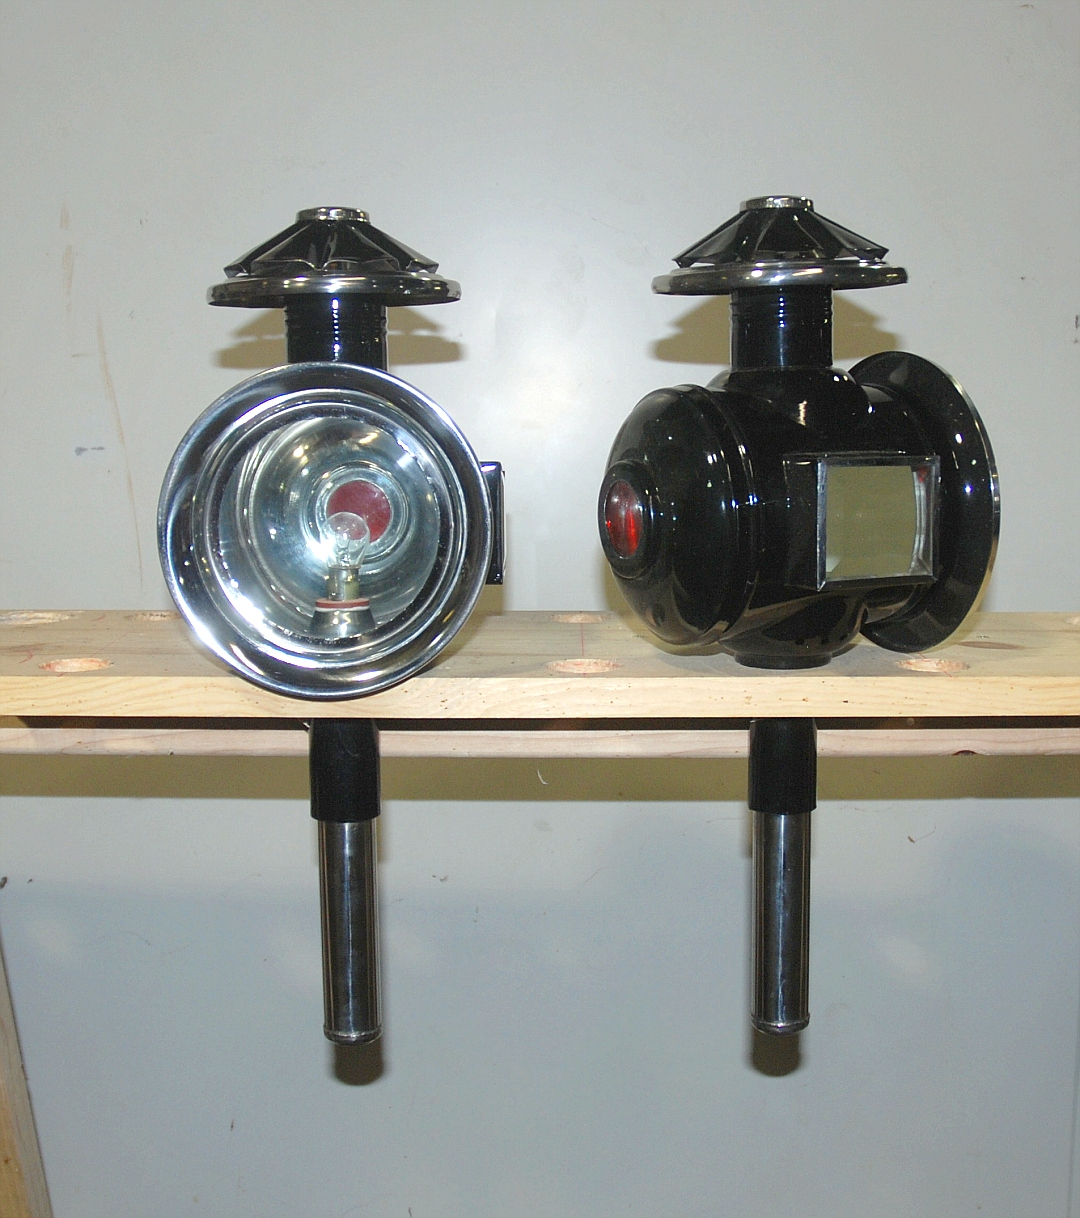 lamps pair black stainless full size carriage lamps 12 volt. Black Bedroom Furniture Sets. Home Design Ideas